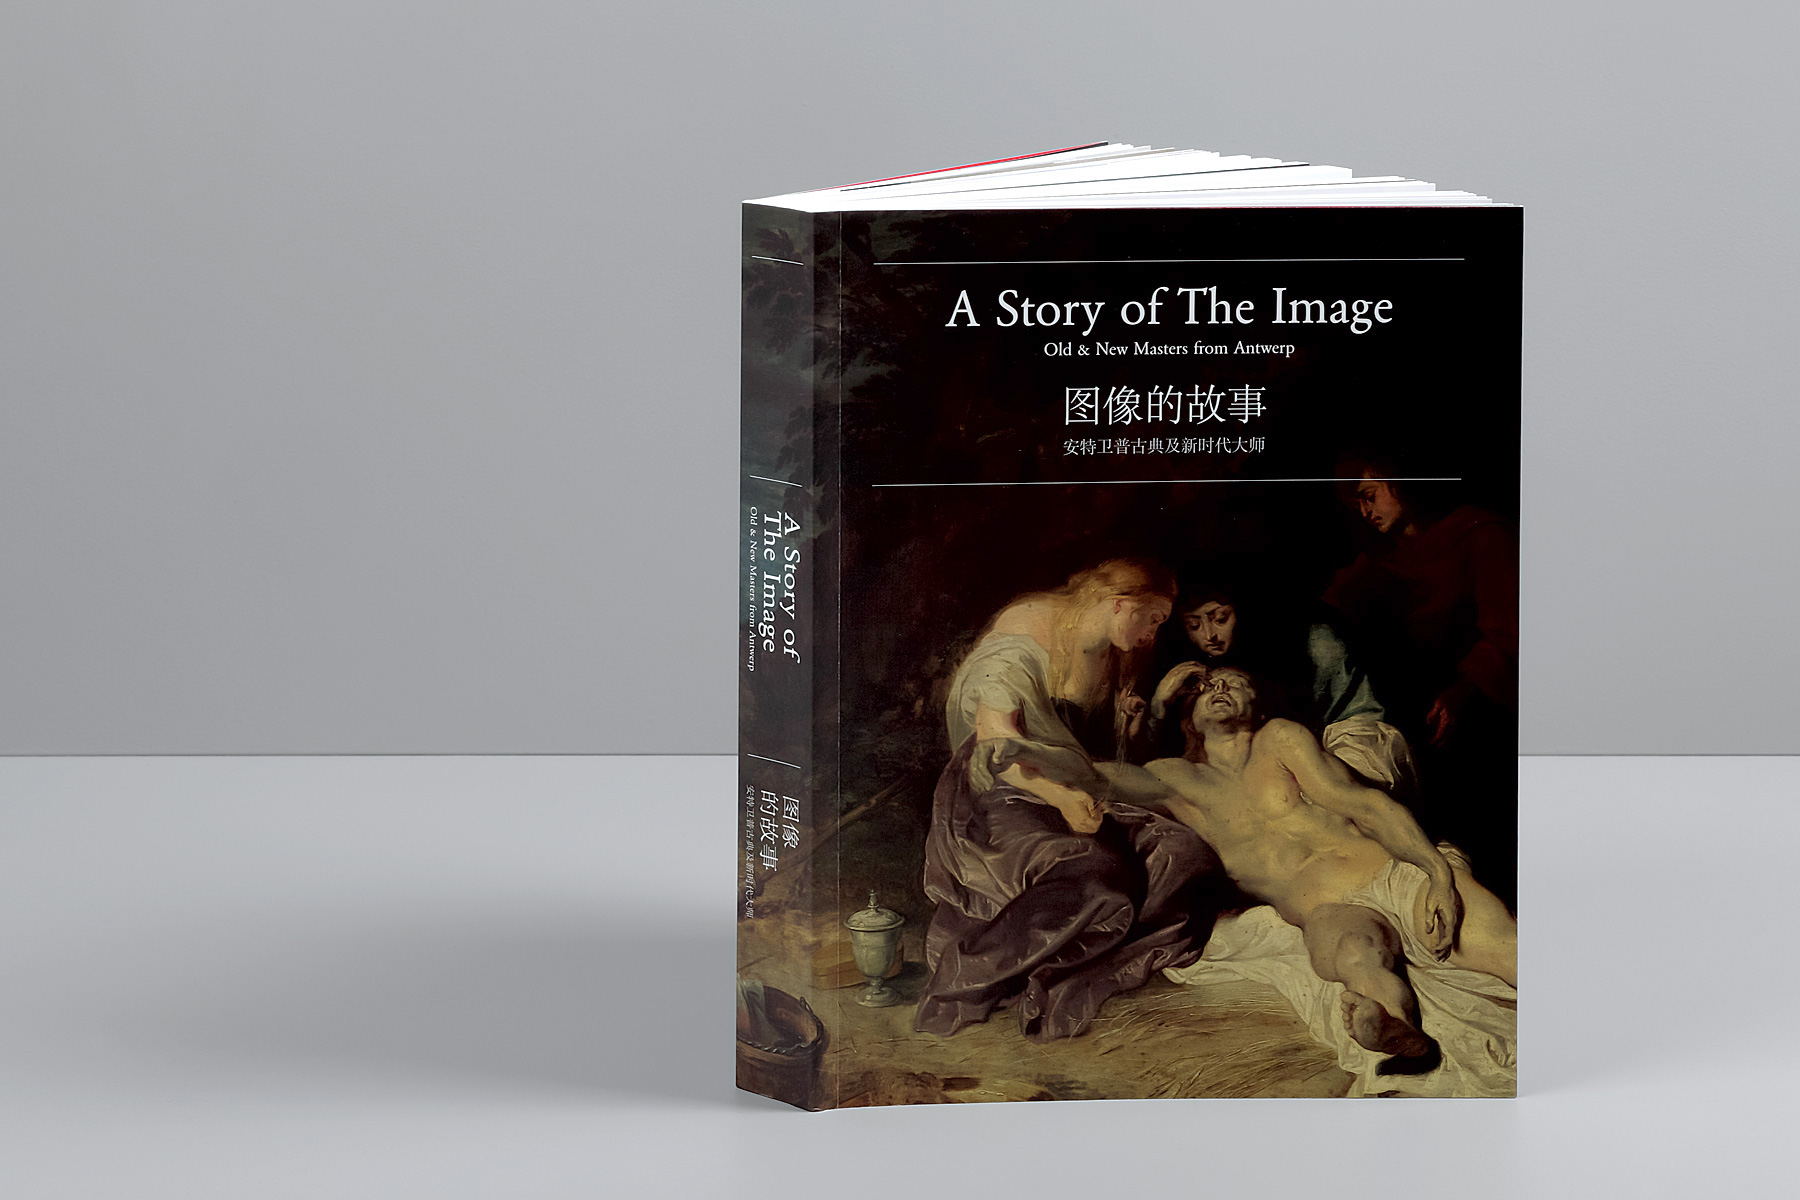 A-Story-Of-The-Image-1